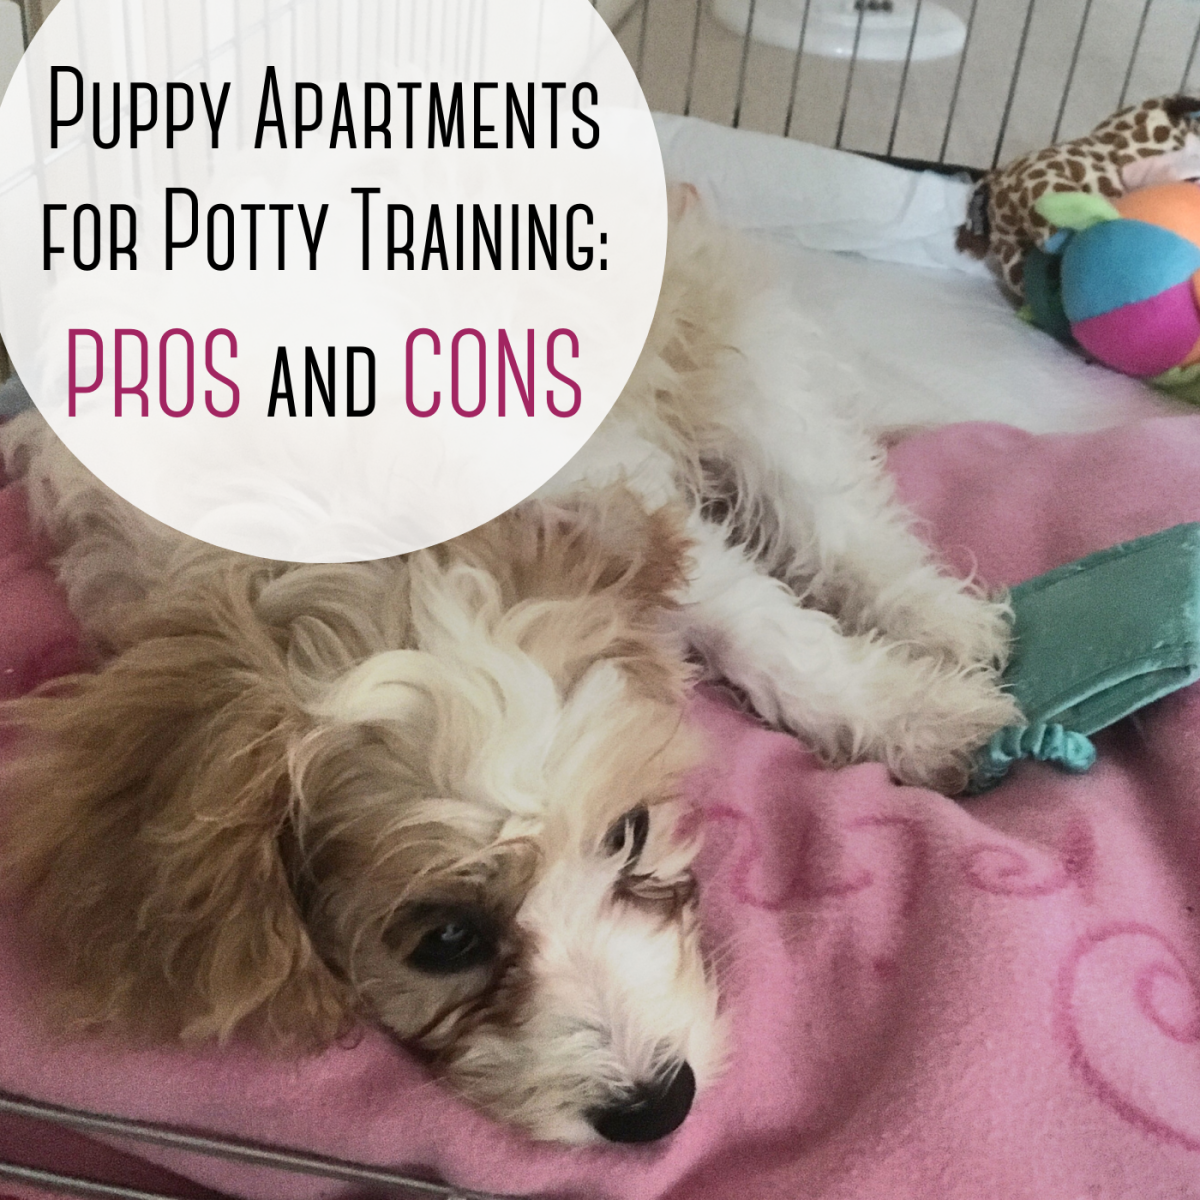 """Are """"puppy apartments"""" the new solution to potty training dogs?"""